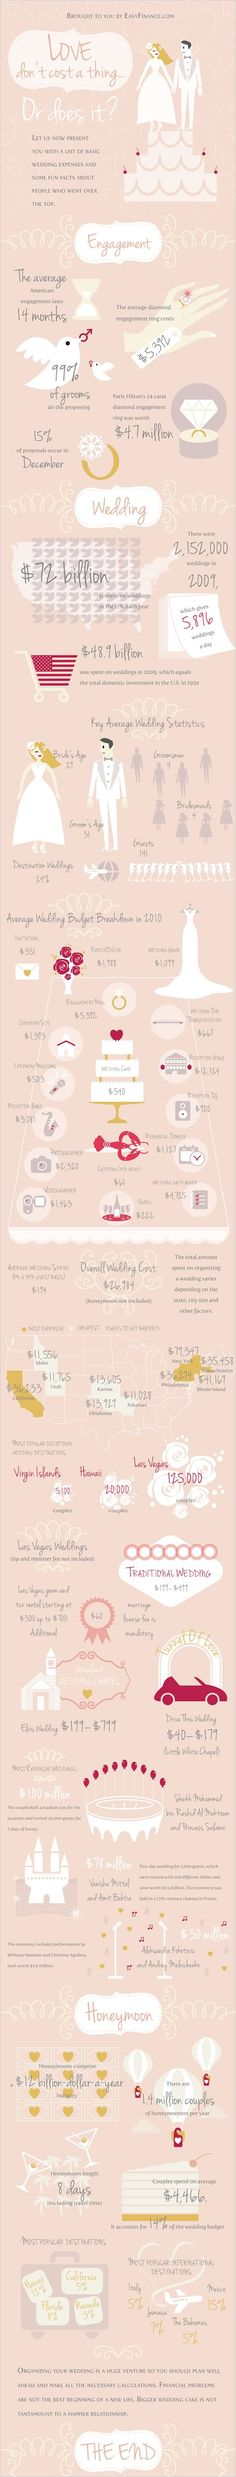 cost of getting married